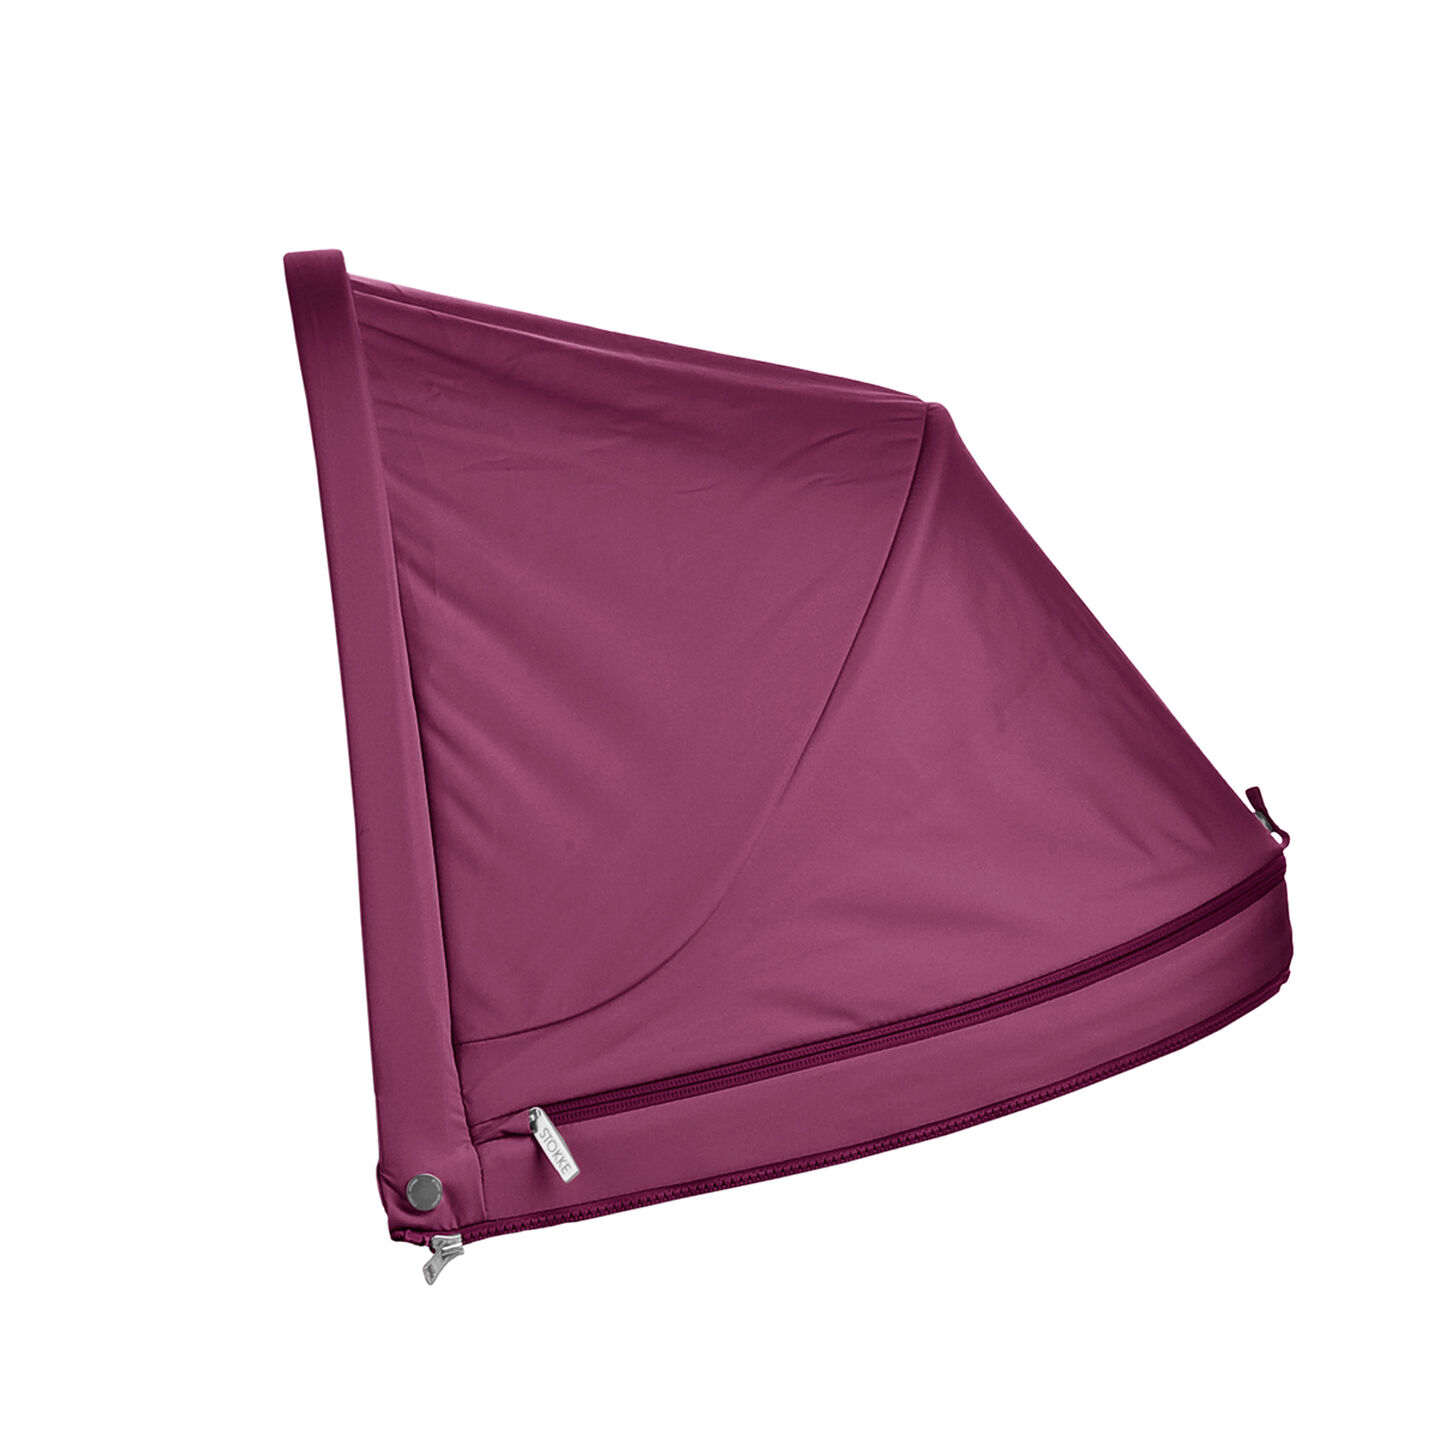 Stokke® capote poussette Prune, Violet, mainview view 2